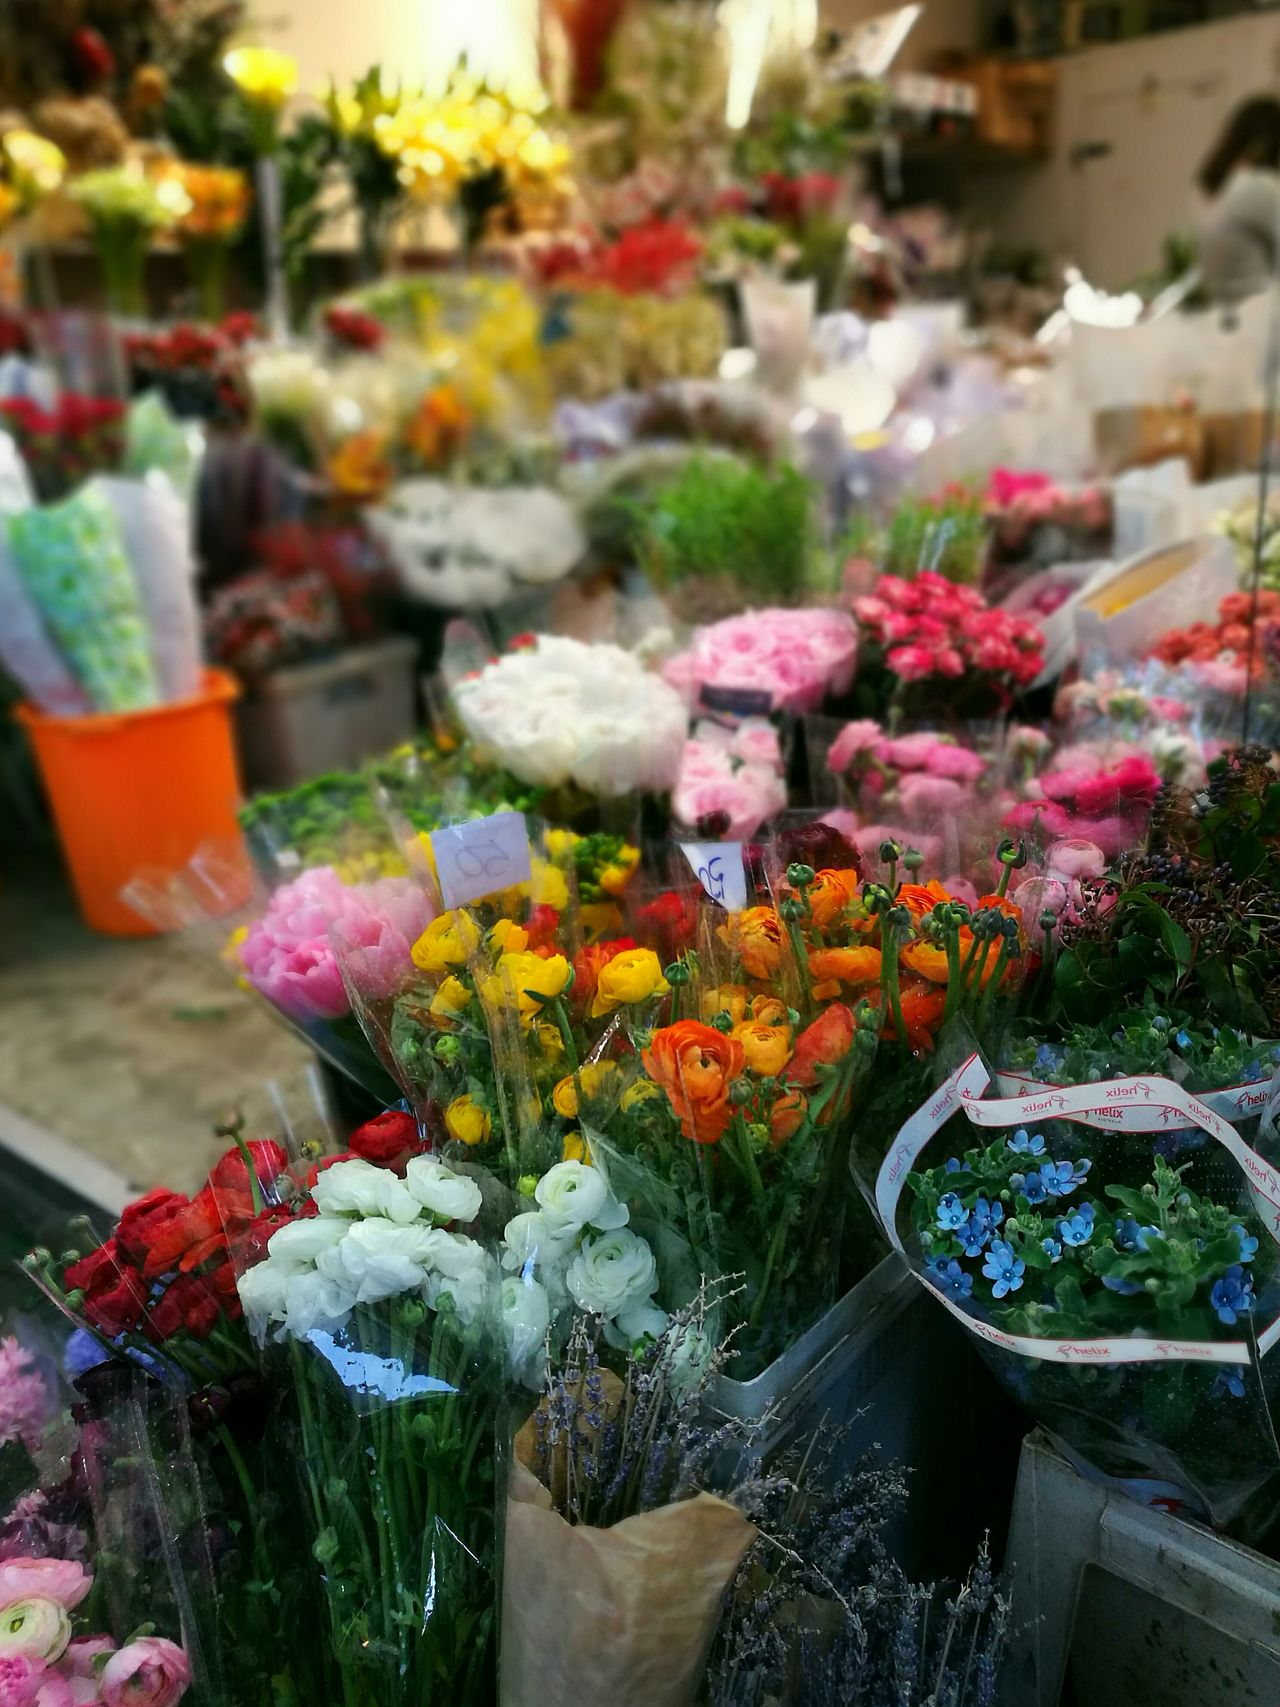 Multi Colored Flower Shop Bouquet Fragility Flower Market Street Photography On The Street Colours Of Life Street Wandering Around Aimlessly HuaweiP9 Leica Lens Art Is Everywhere Hong Kong EyeEm Gallery City Life EyeEm Best Shots Wanderlust Huaweiphotography Photograph Like Painting Wanderer Asian Cities Greenhouse Urban Photography Beauty In Nature